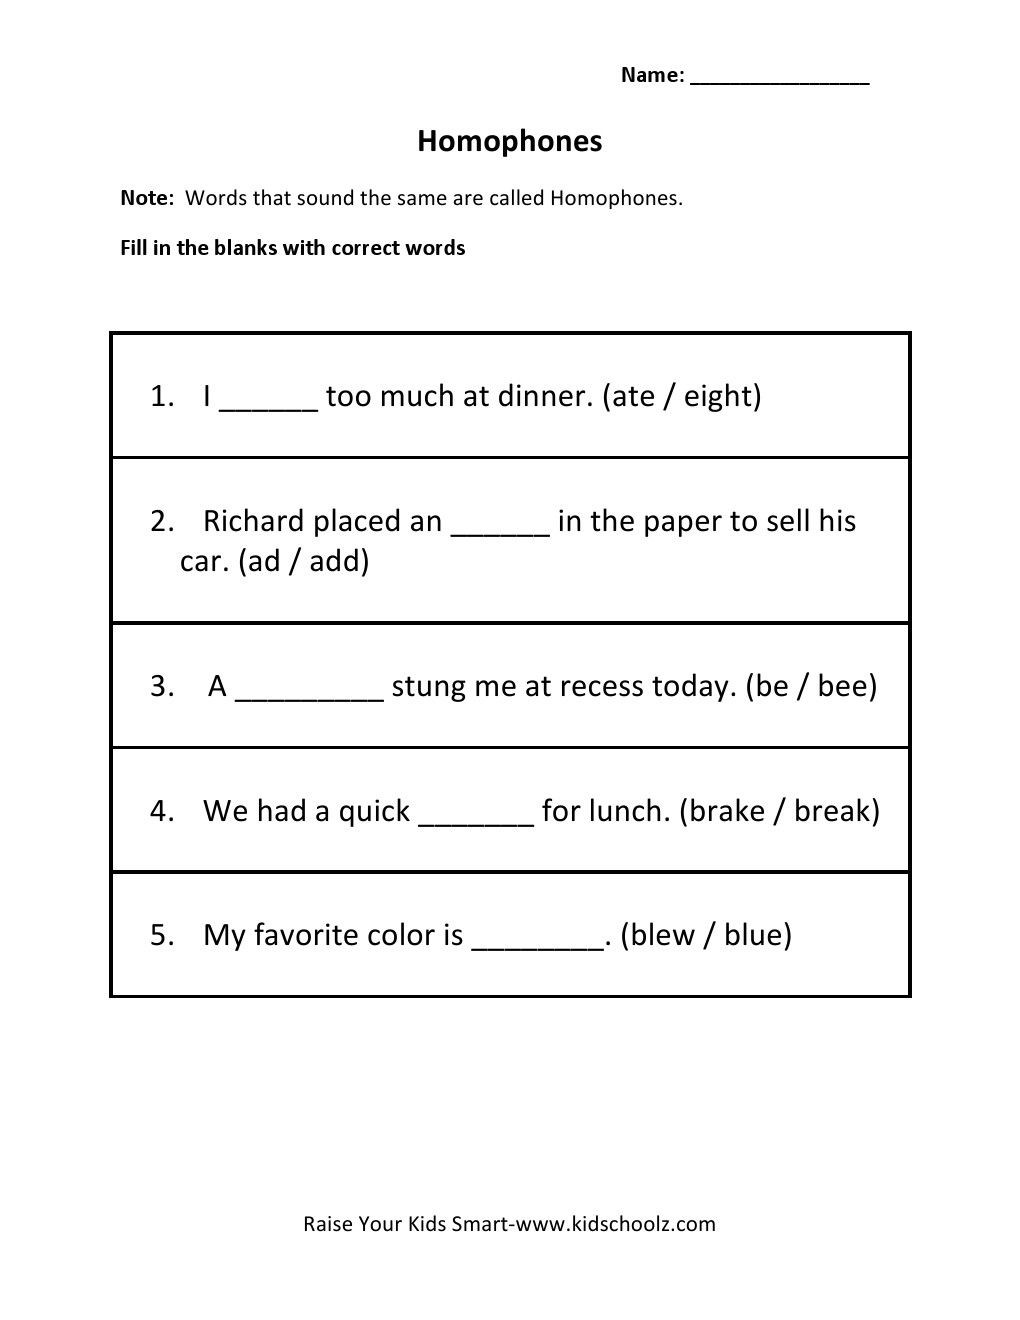 Homophones Worksheet 4th Grade Homophones Worksheets for Grade 5